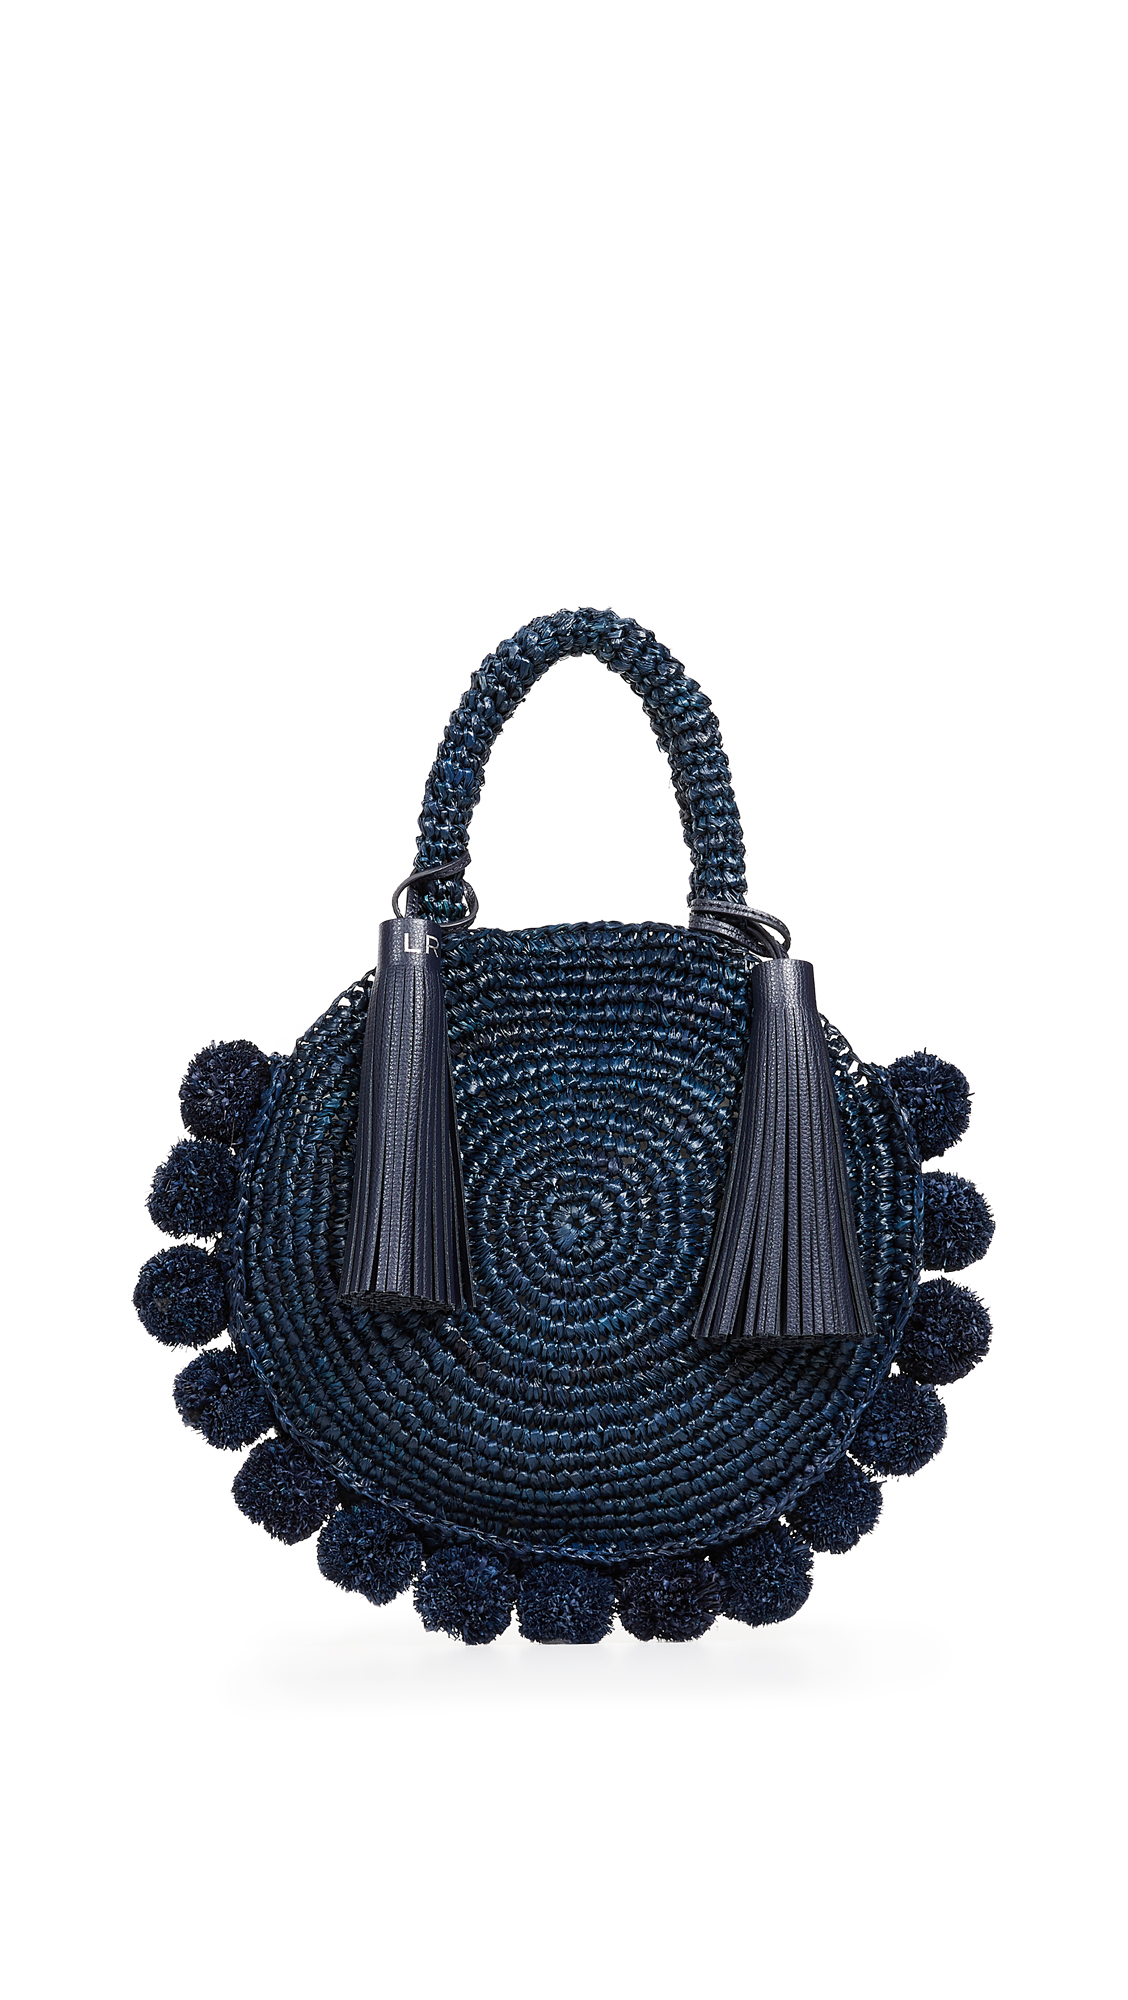 woven-bags-and-accessories-2018-round1